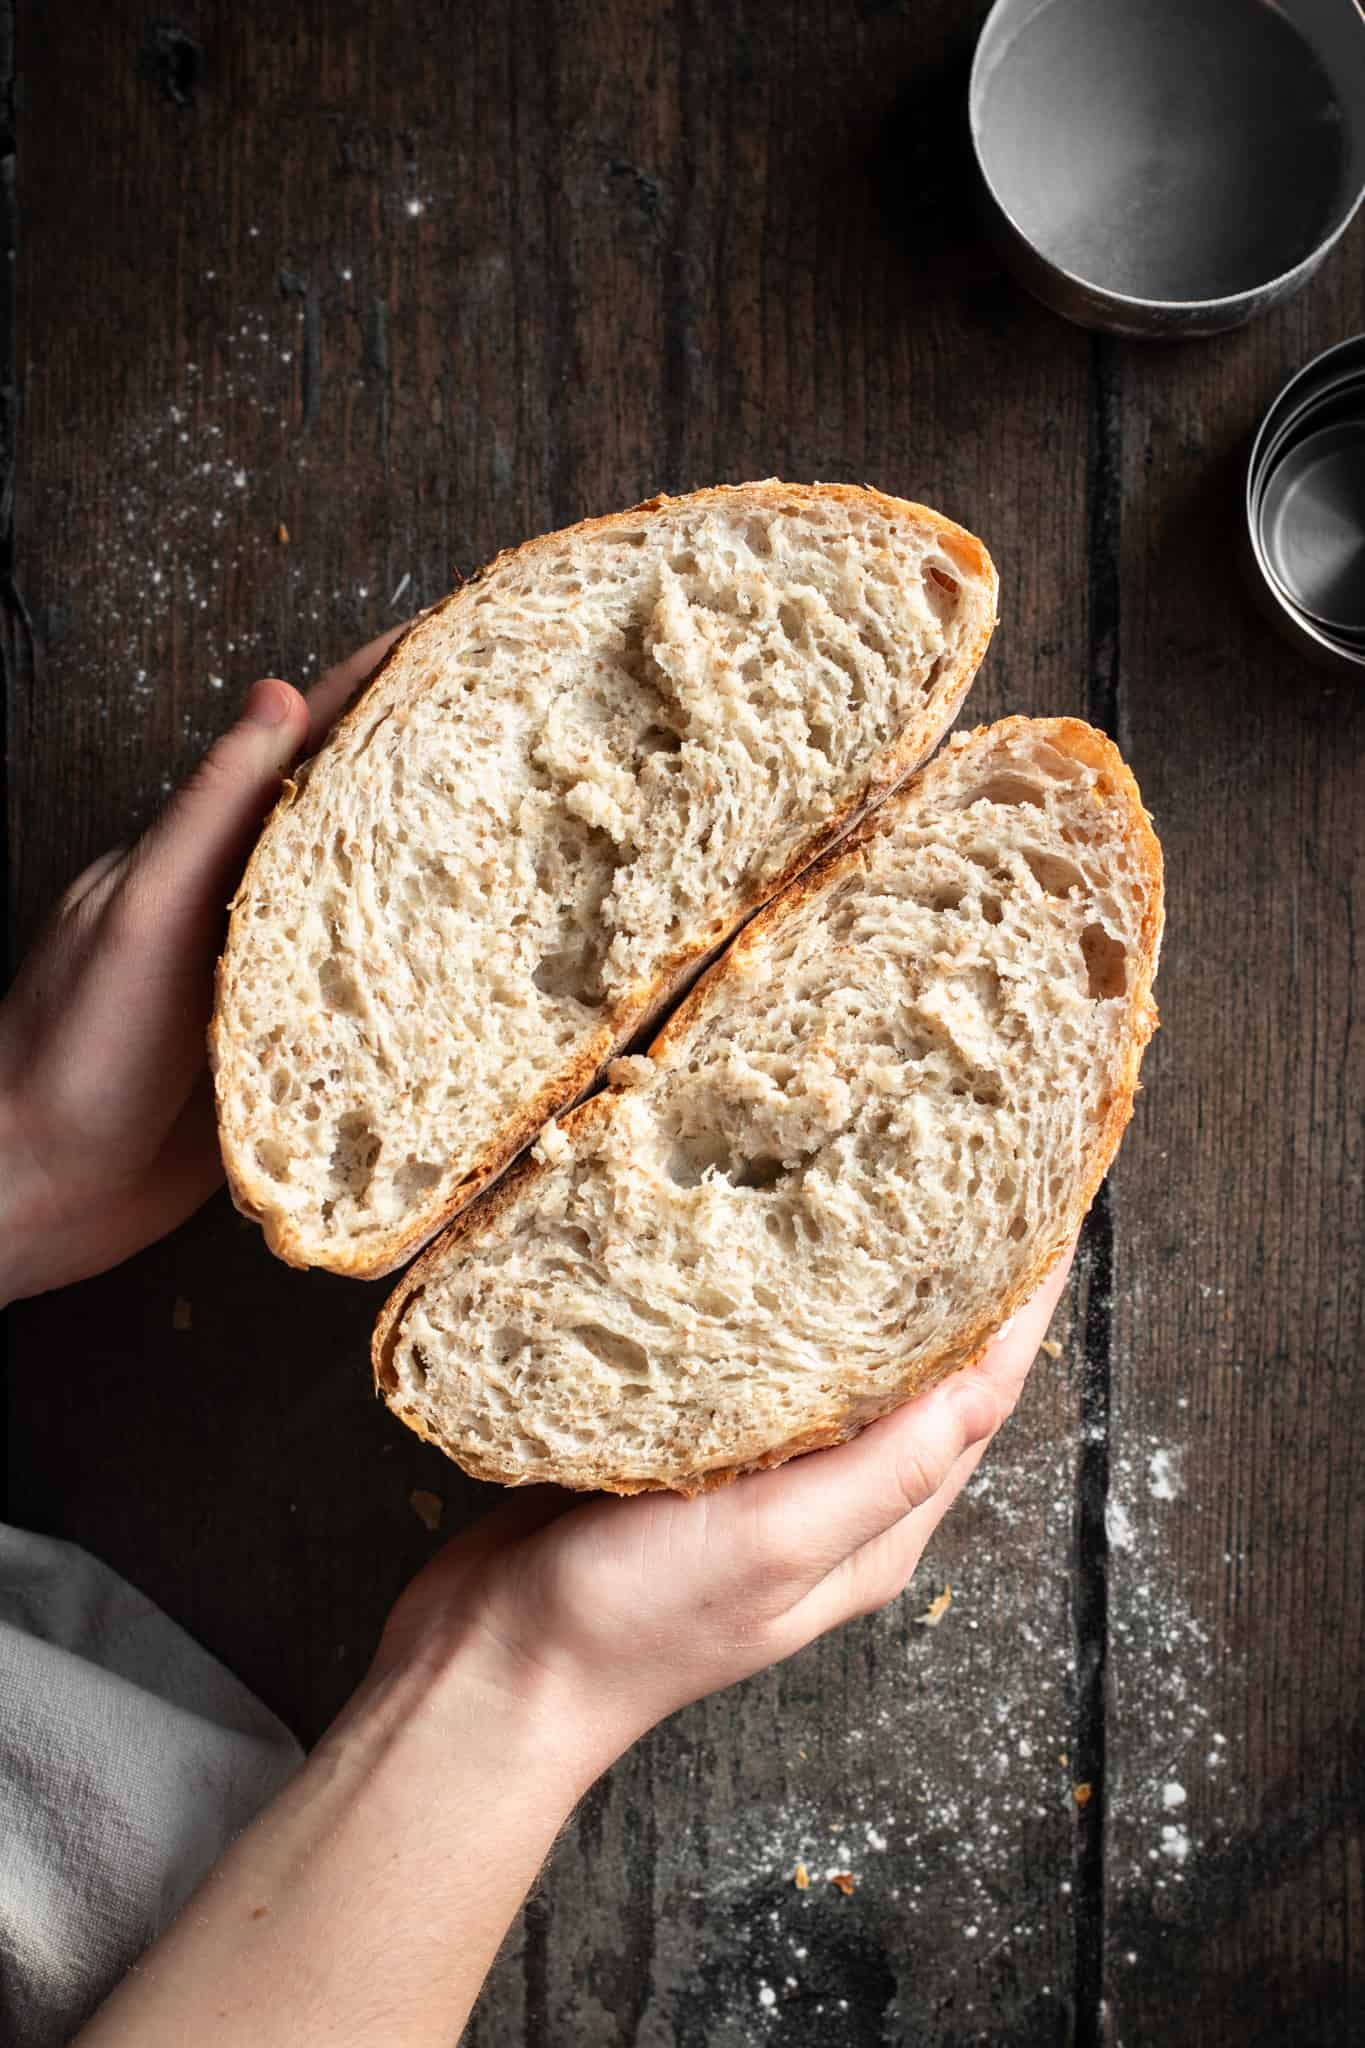 Hands holding whole wheat bread cut in half